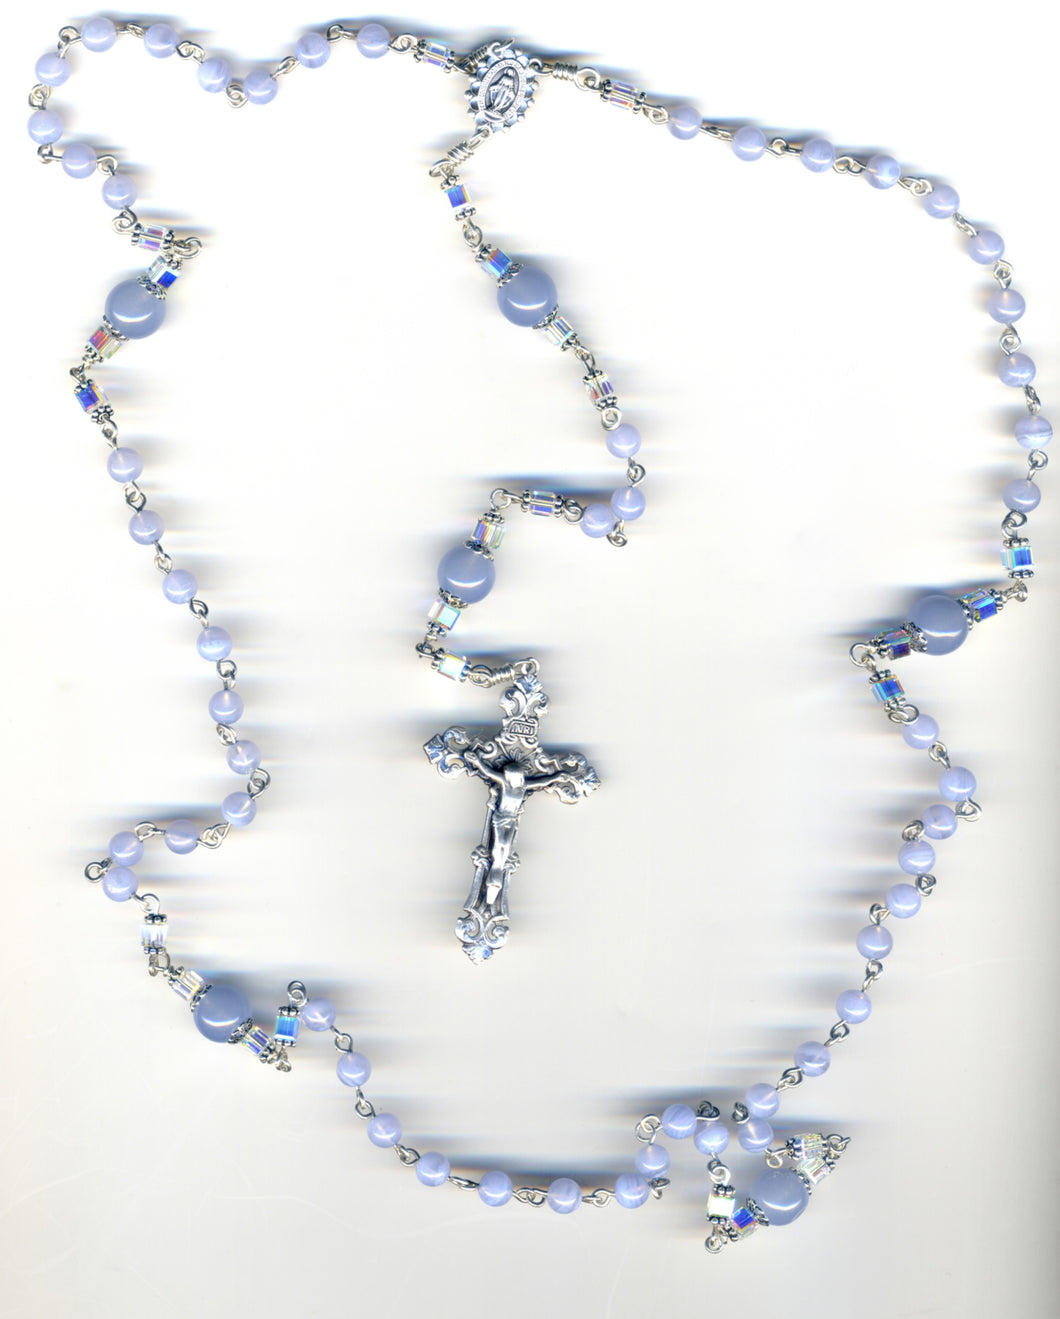 SkyBlue Agate Rosary in Sterling Silver